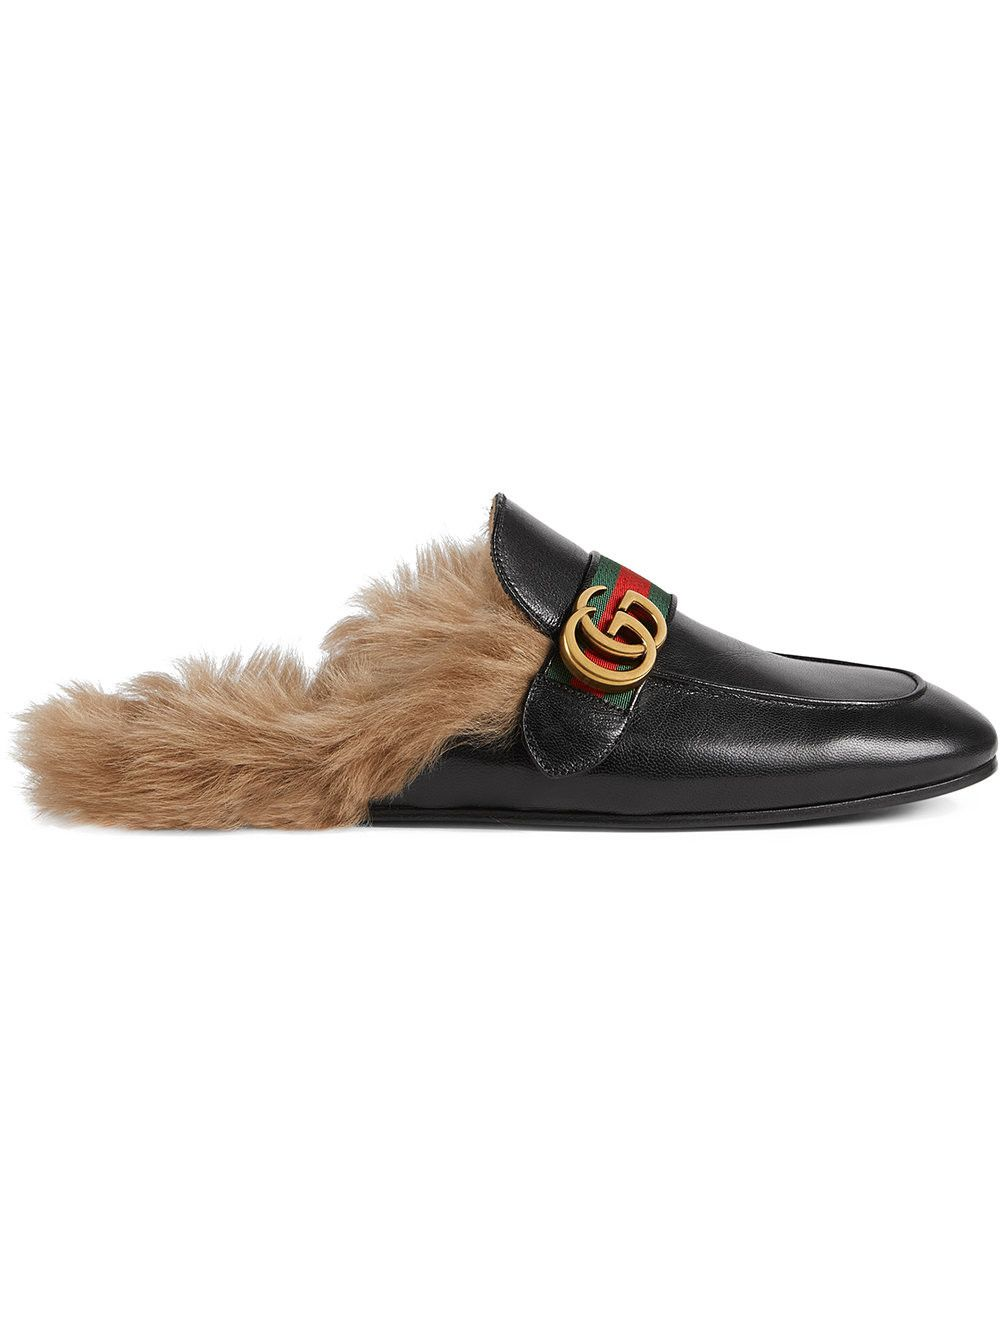 4794bd527d0 GUCCI Princetown Leather Slipper With Double G.  gucci  shoes ...